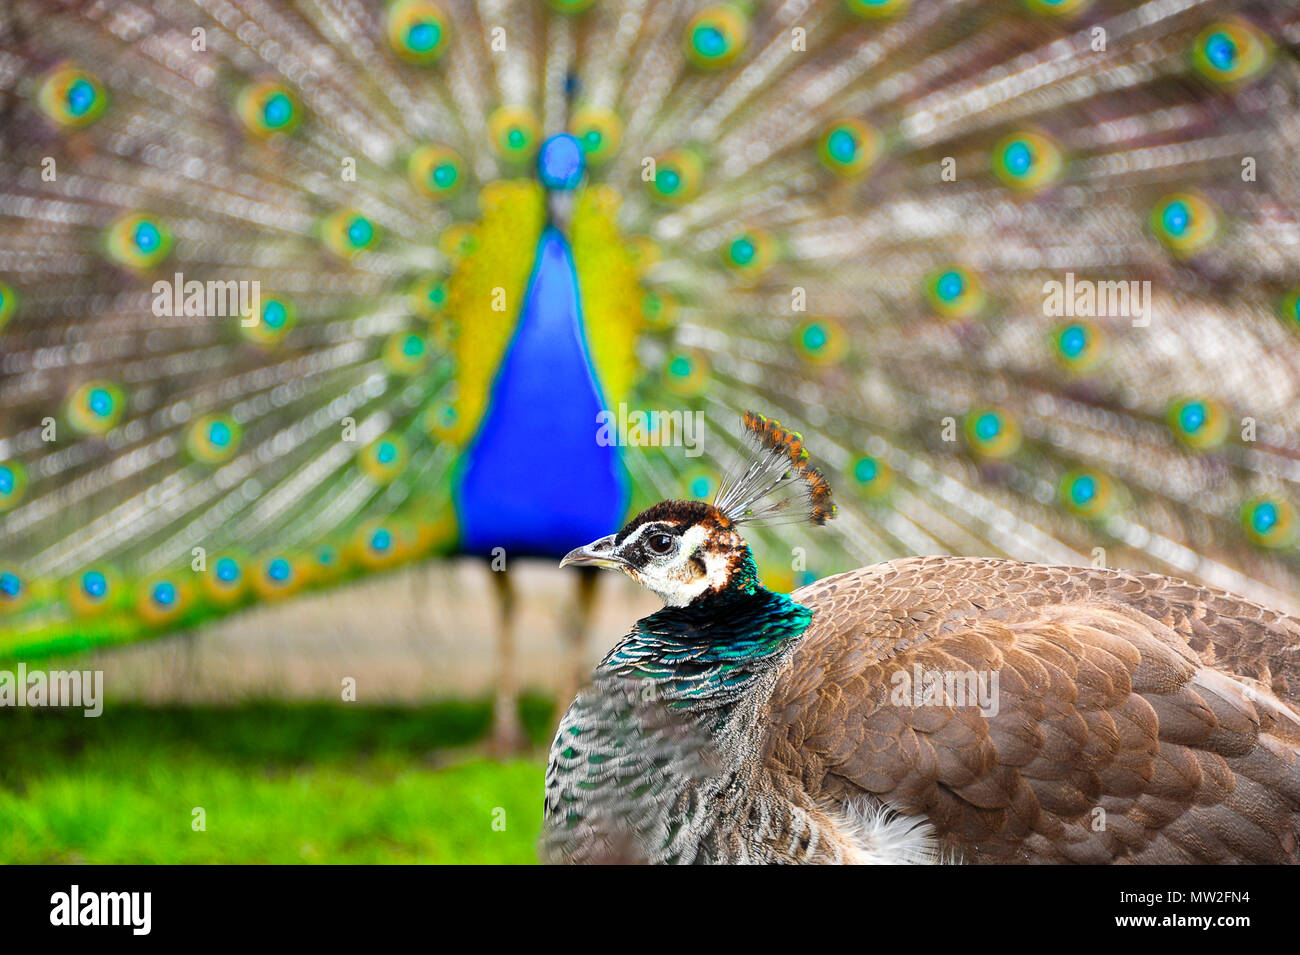 Indian blue peahen provoking a magnificent exhibition from a male in the background - Stock Image